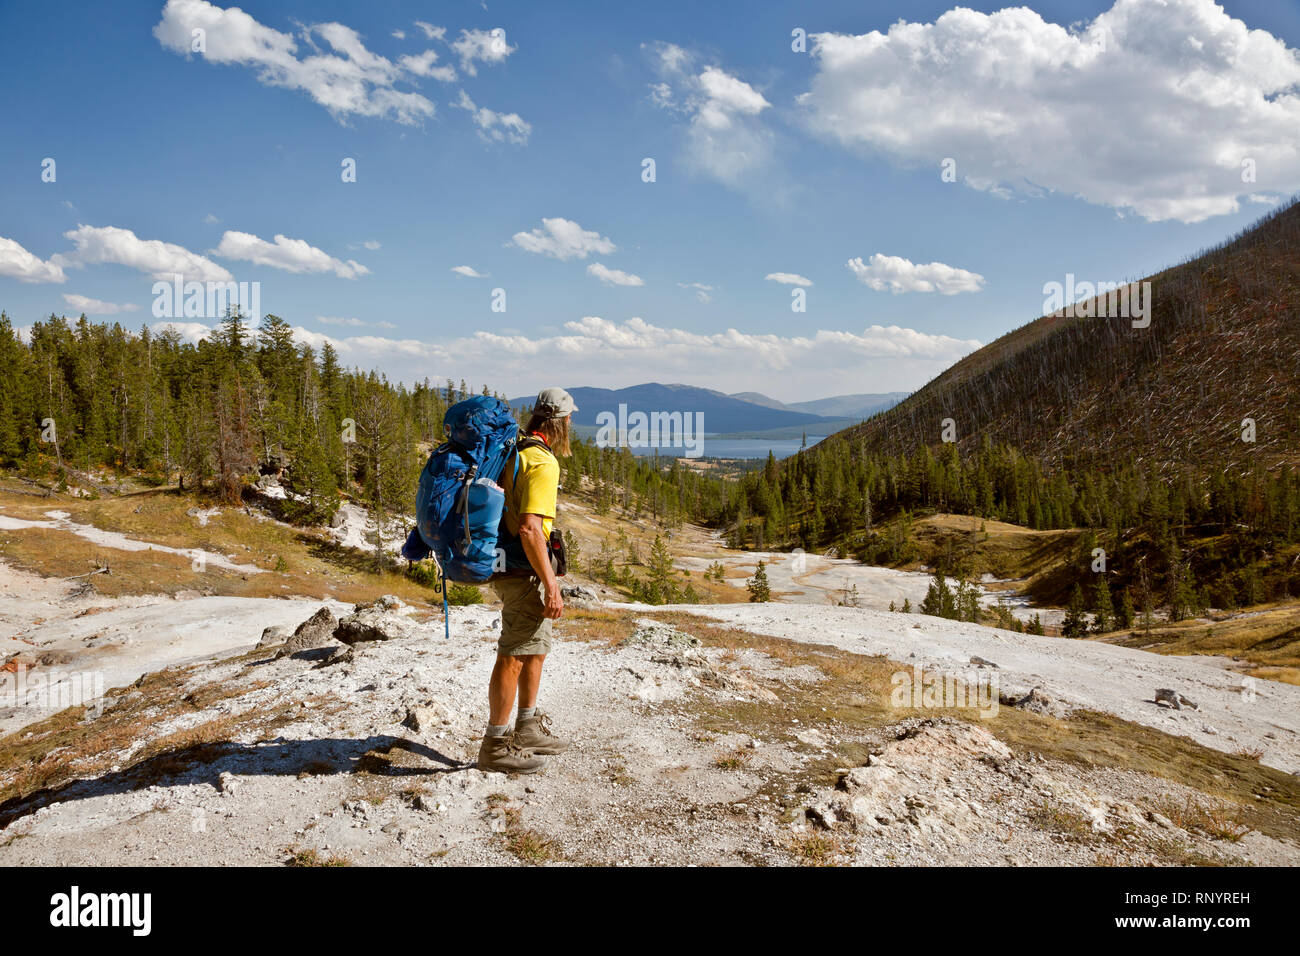 WY03815-00...WYOMING - Hiker at one of the thermal areas along the trail to Heart Lake and the Heart Lake Geyser Basin in Yellowstone National Park. - Stock Image